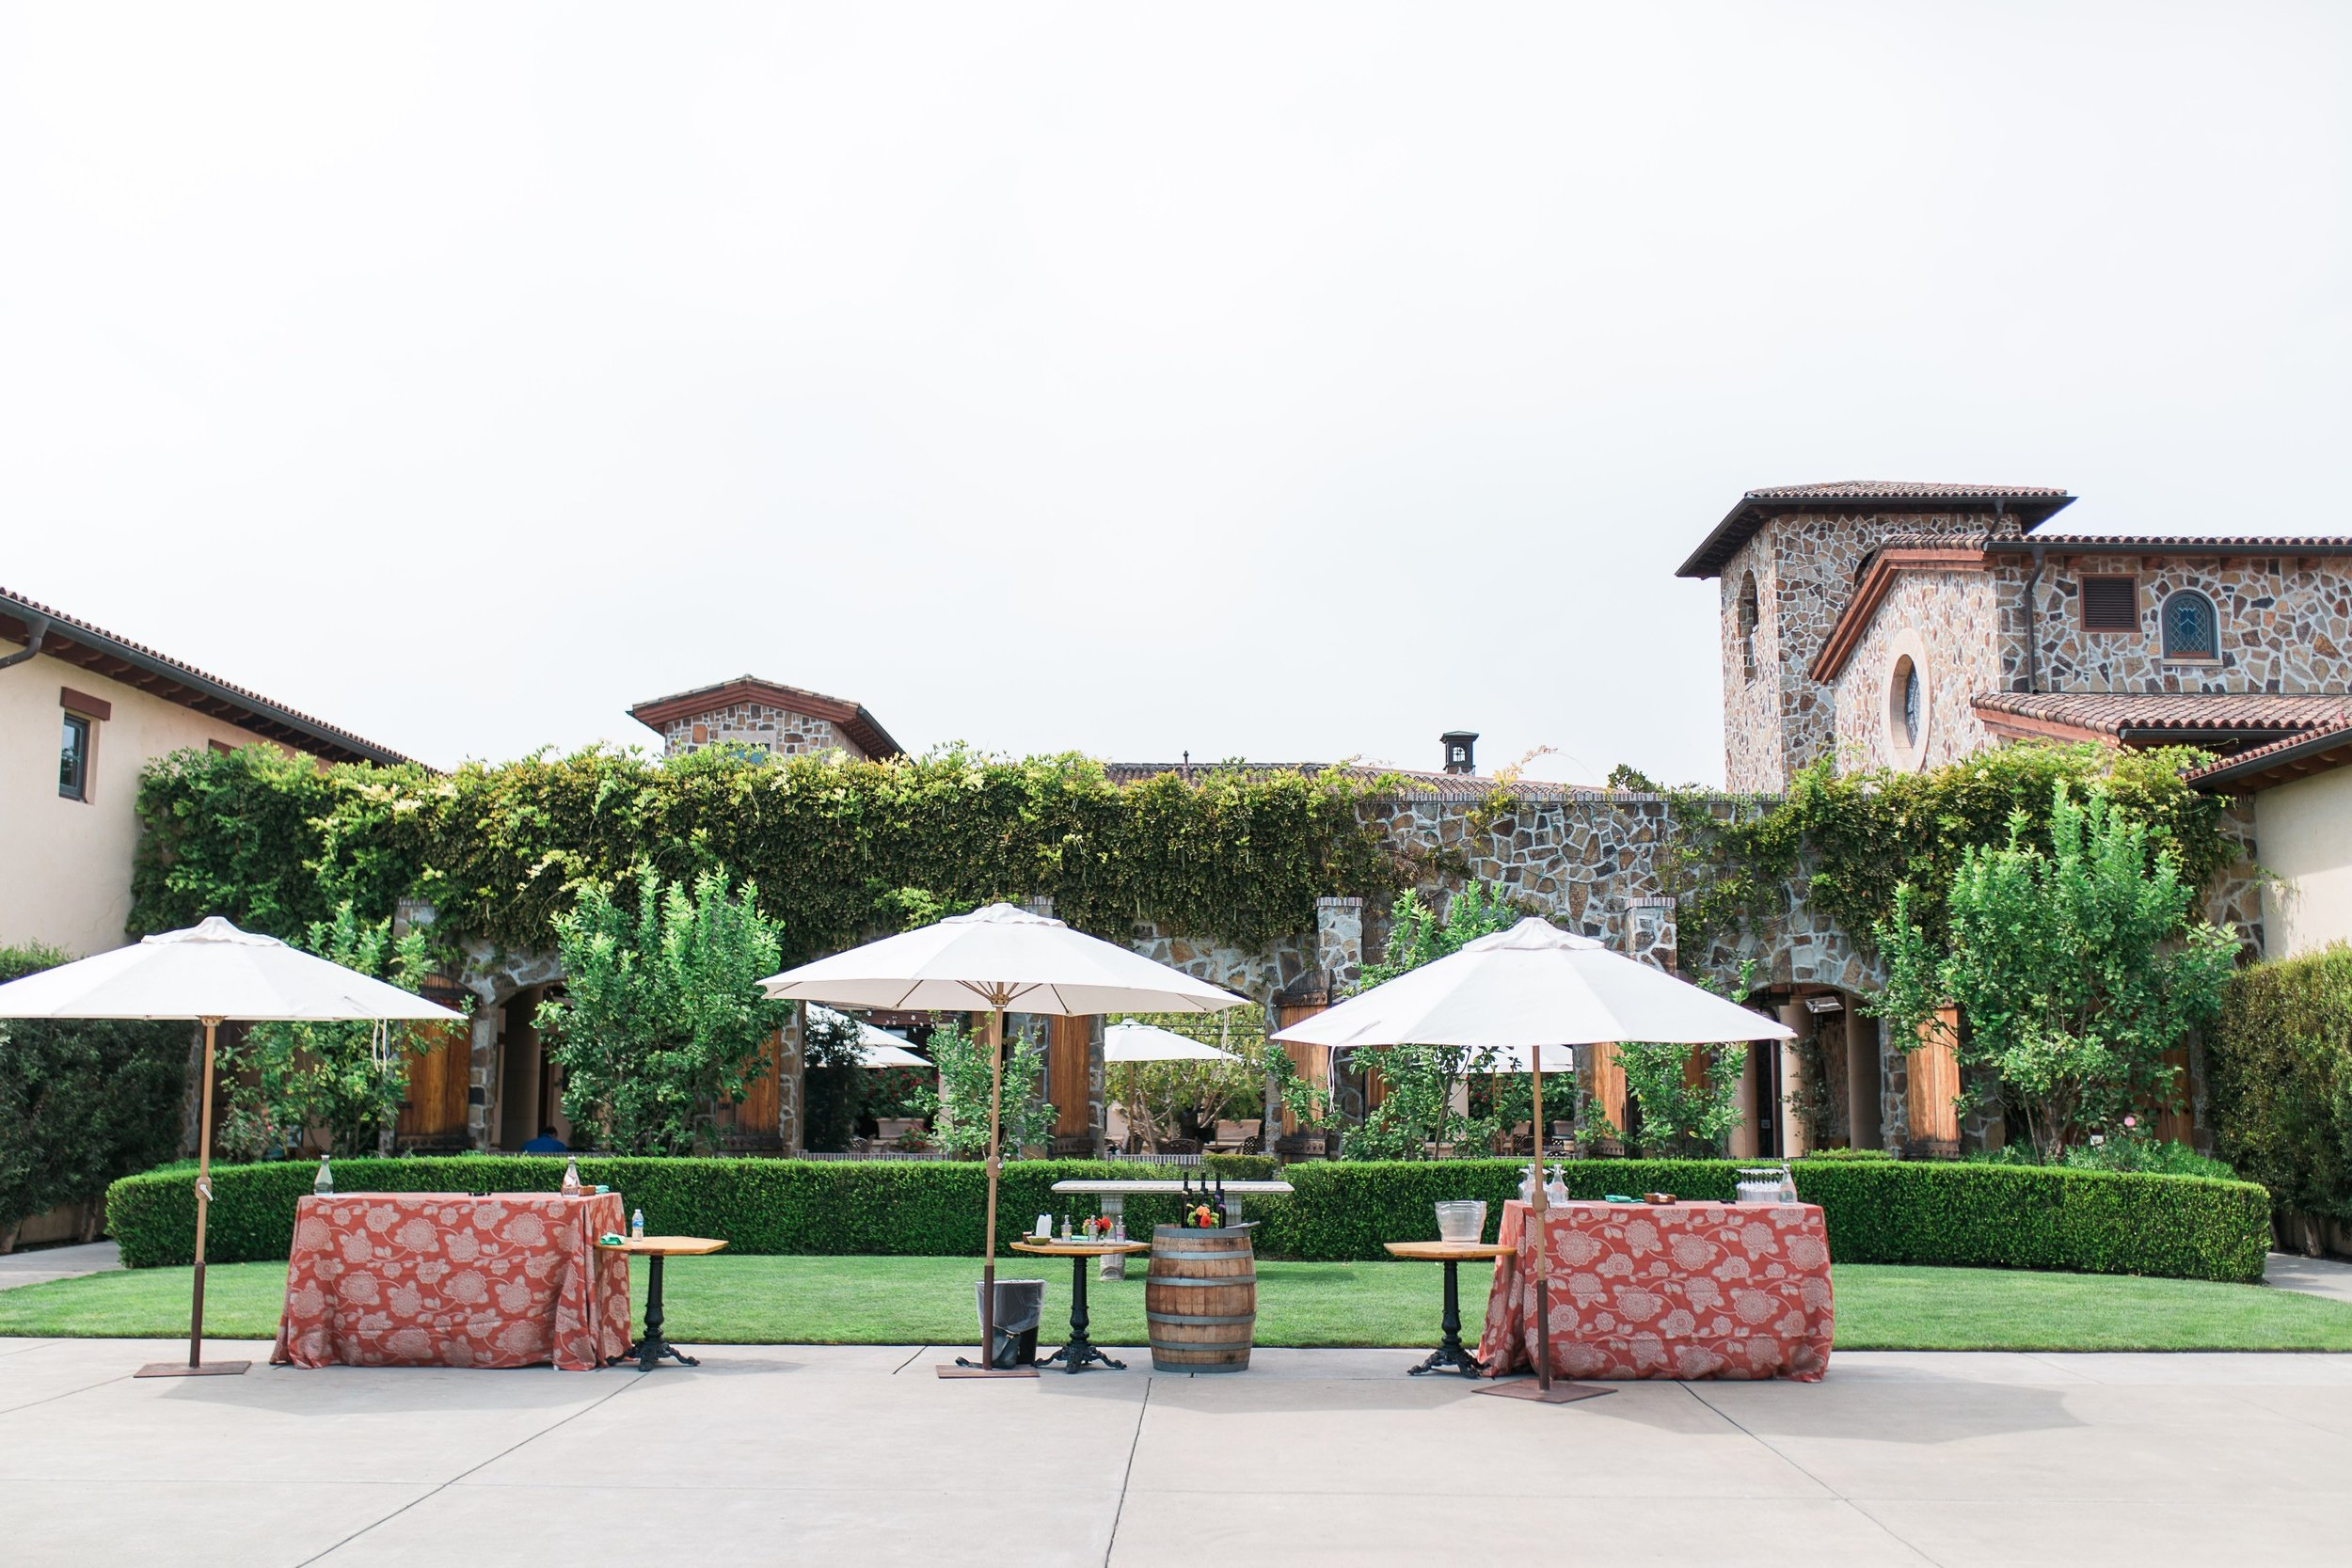 Best-Corporate-Event-Venue-San-Francisco-Sonoma-Jacuzzzi-Vineyards-Photographer-SF-by-JBJ-PIctures (4).jpg